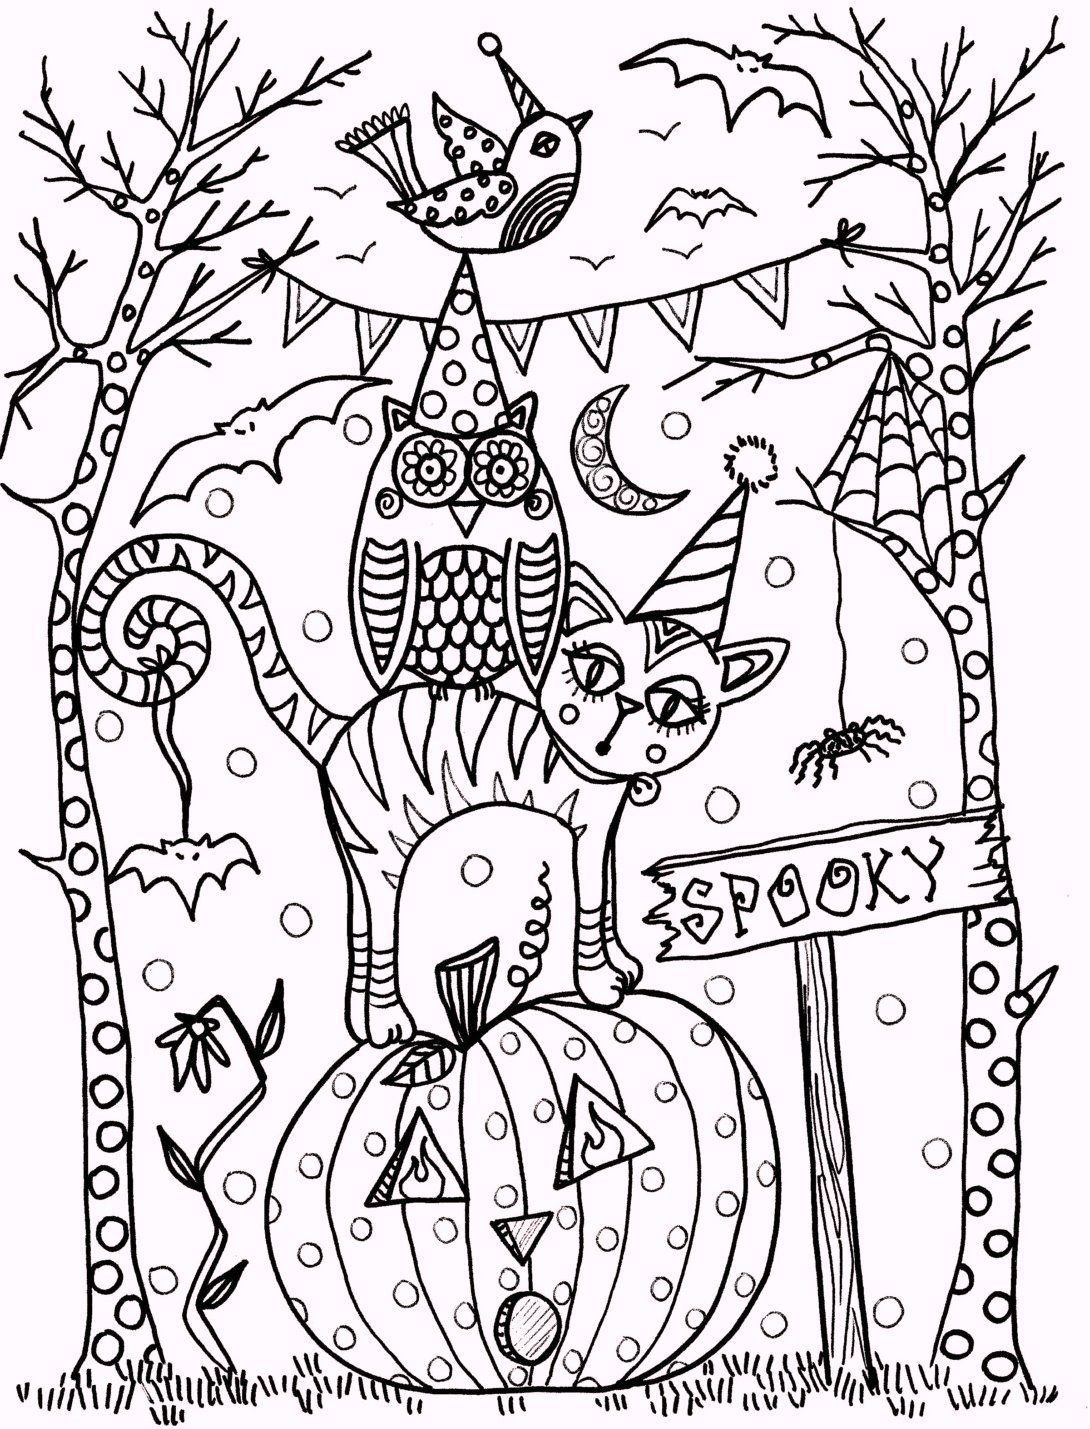 Coloringpagesfortoddlers Com Enjoy These Free Printable New Vintage Halloween Coloring Halloween Coloring Book Fall Coloring Pages Halloween Coloring Pages [ 1429 x 1090 Pixel ]